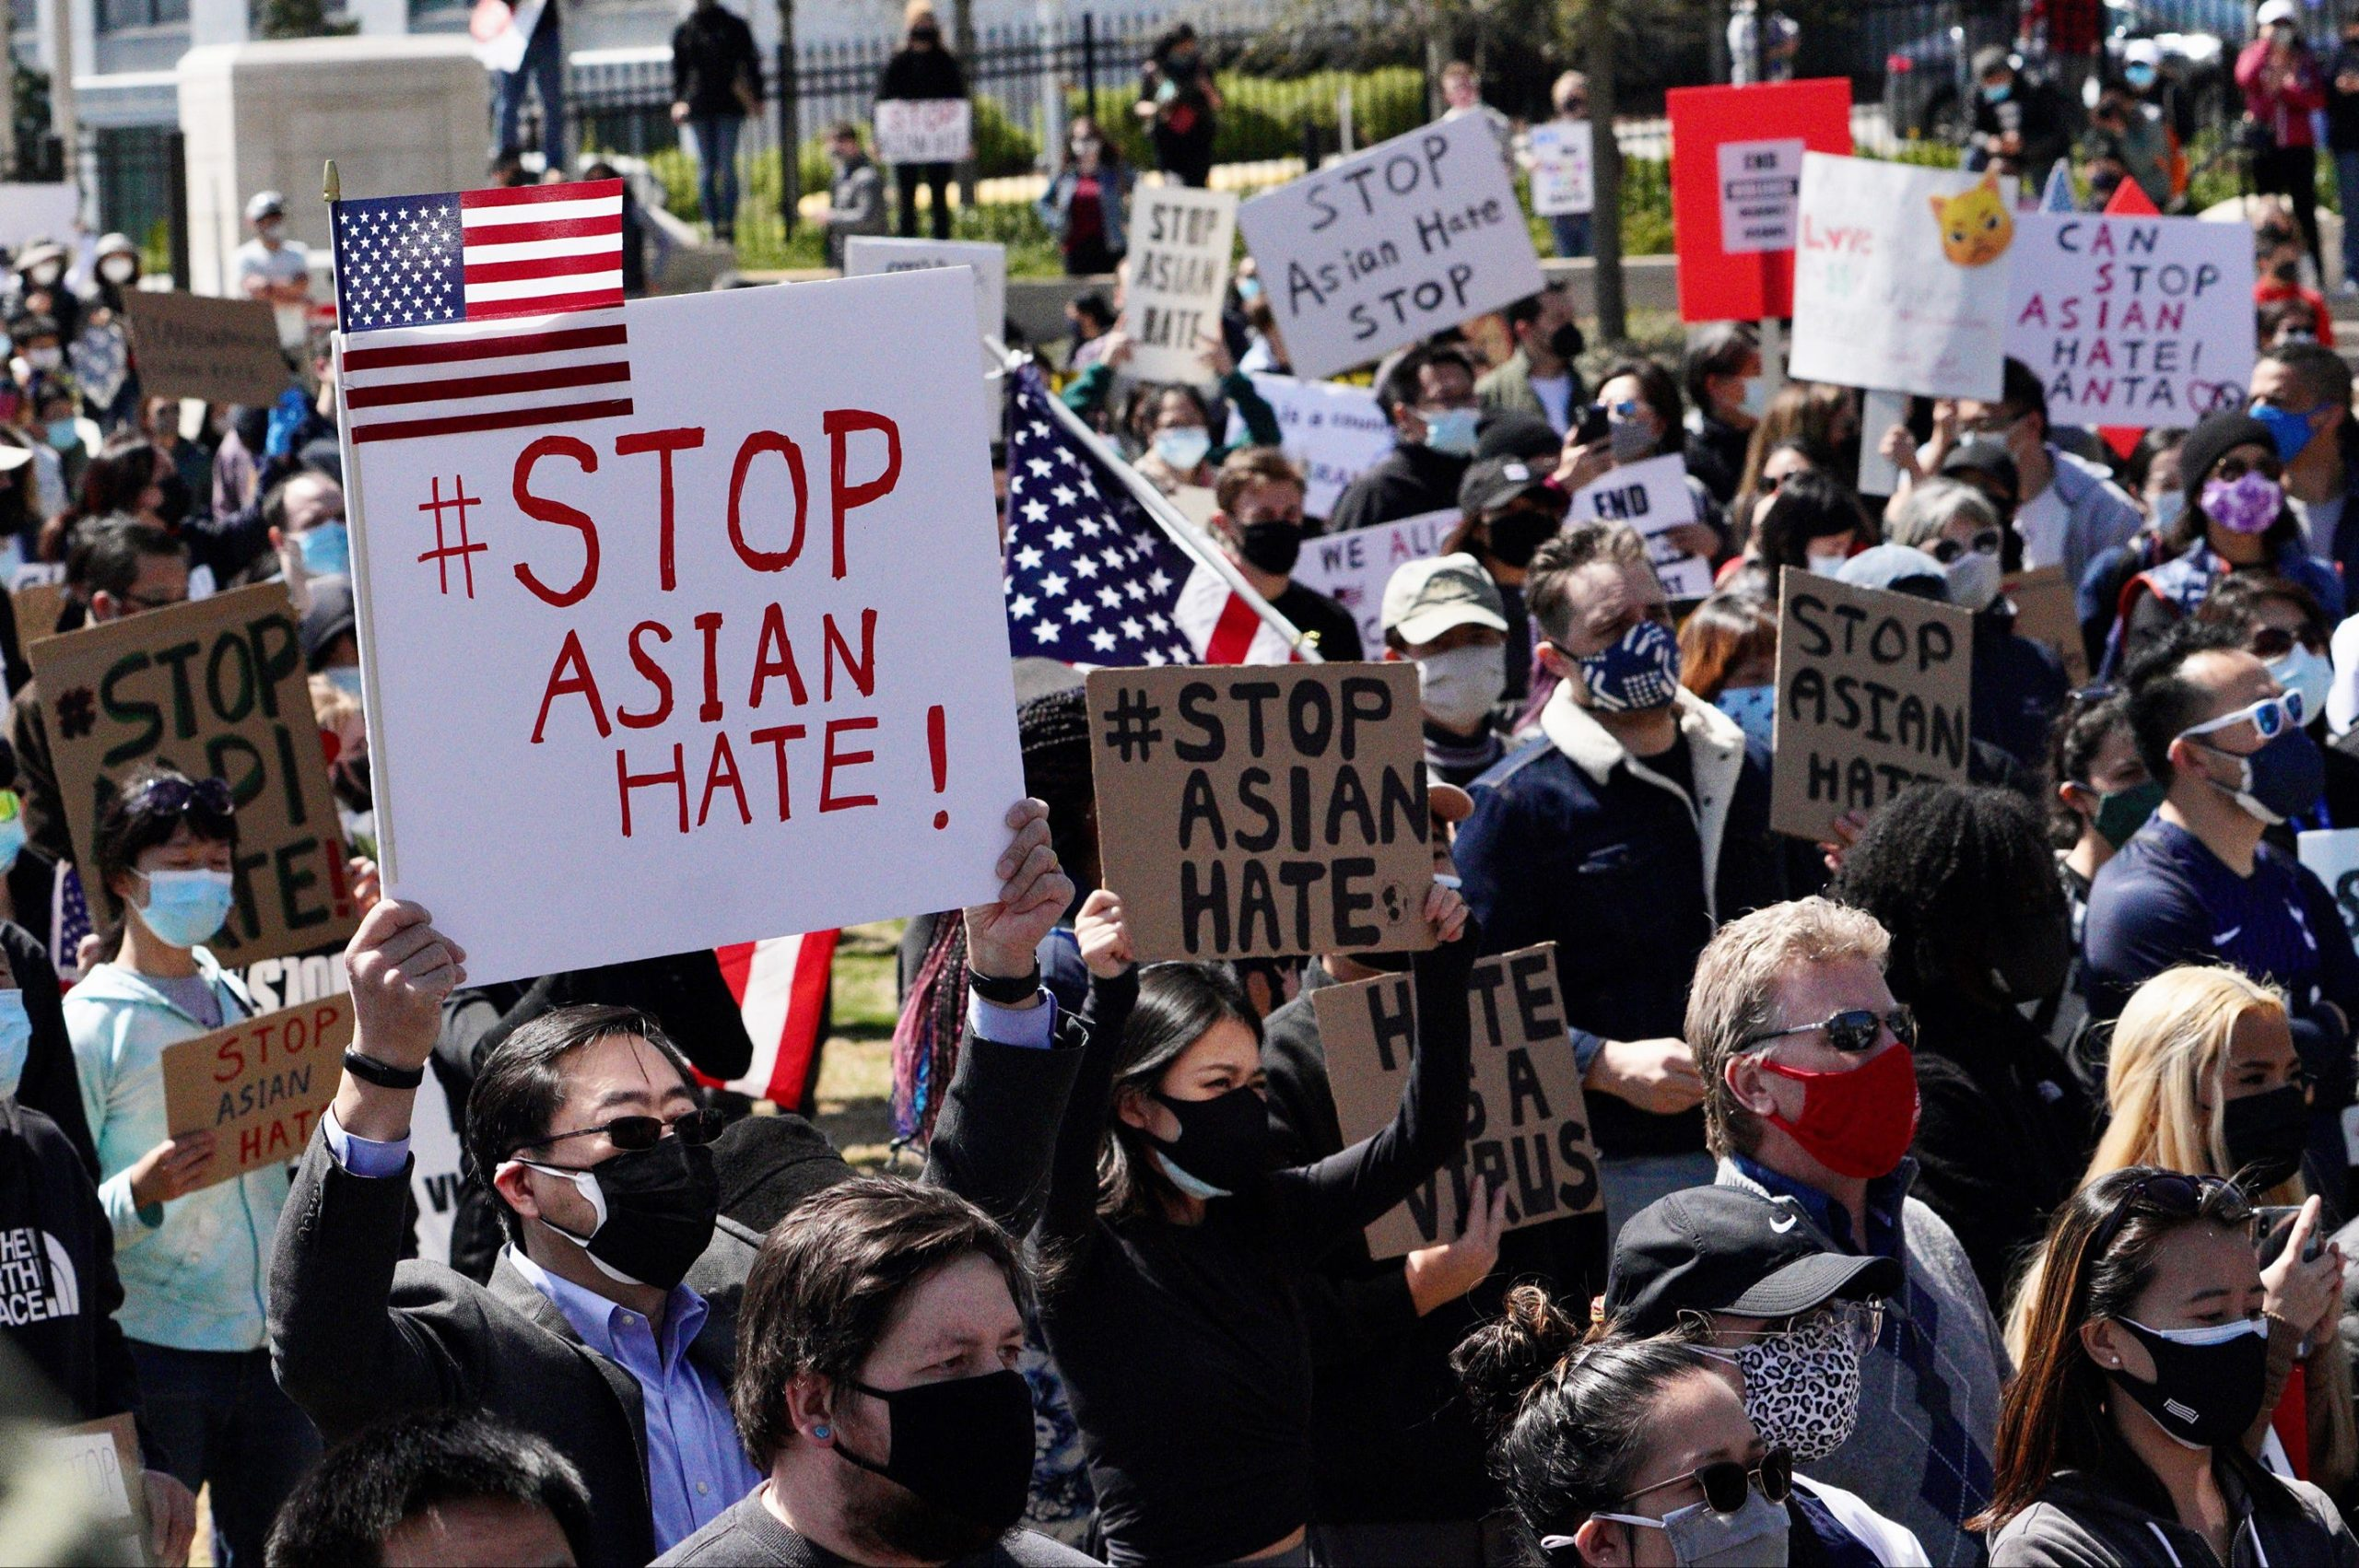 How to support the Asian American community with your dollars amid rise in anti-Asian attacks